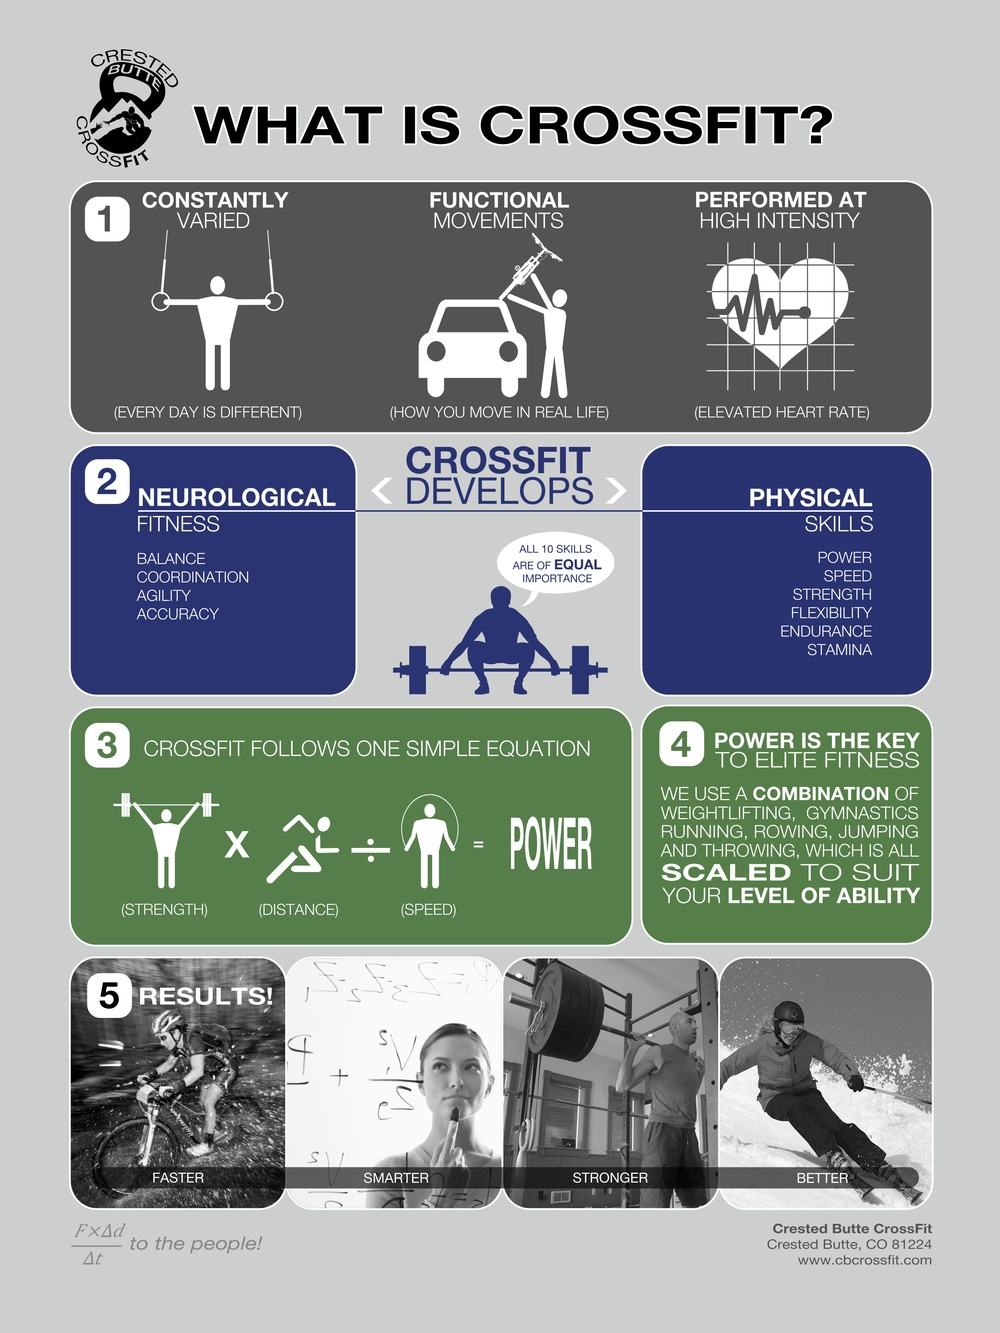 A totally awesome infographic to explain CrossFit simply to your friends and family!